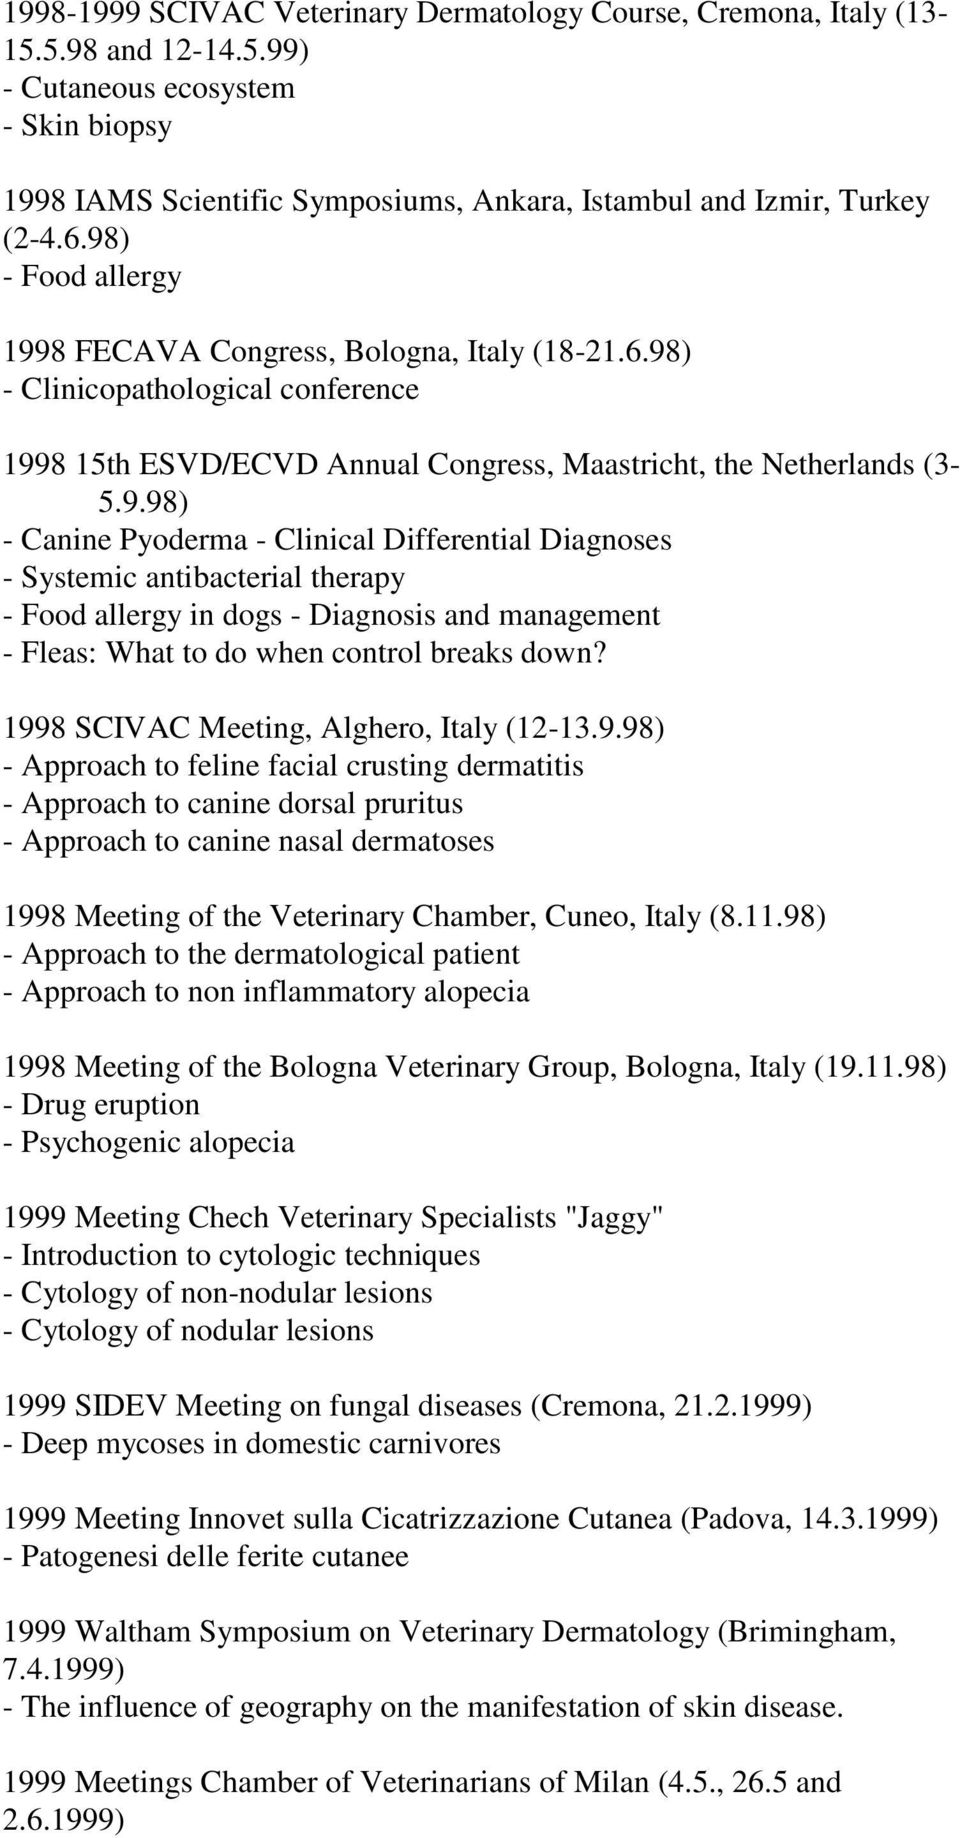 1998 SCIVAC Meeting, Alghero, Italy (12-13.9.98) - Approach to feline facial crusting dermatitis - Approach to canine dorsal pruritus - Approach to canine nasal dermatoses 1998 Meeting of the Veterinary Chamber, Cuneo, Italy (8.